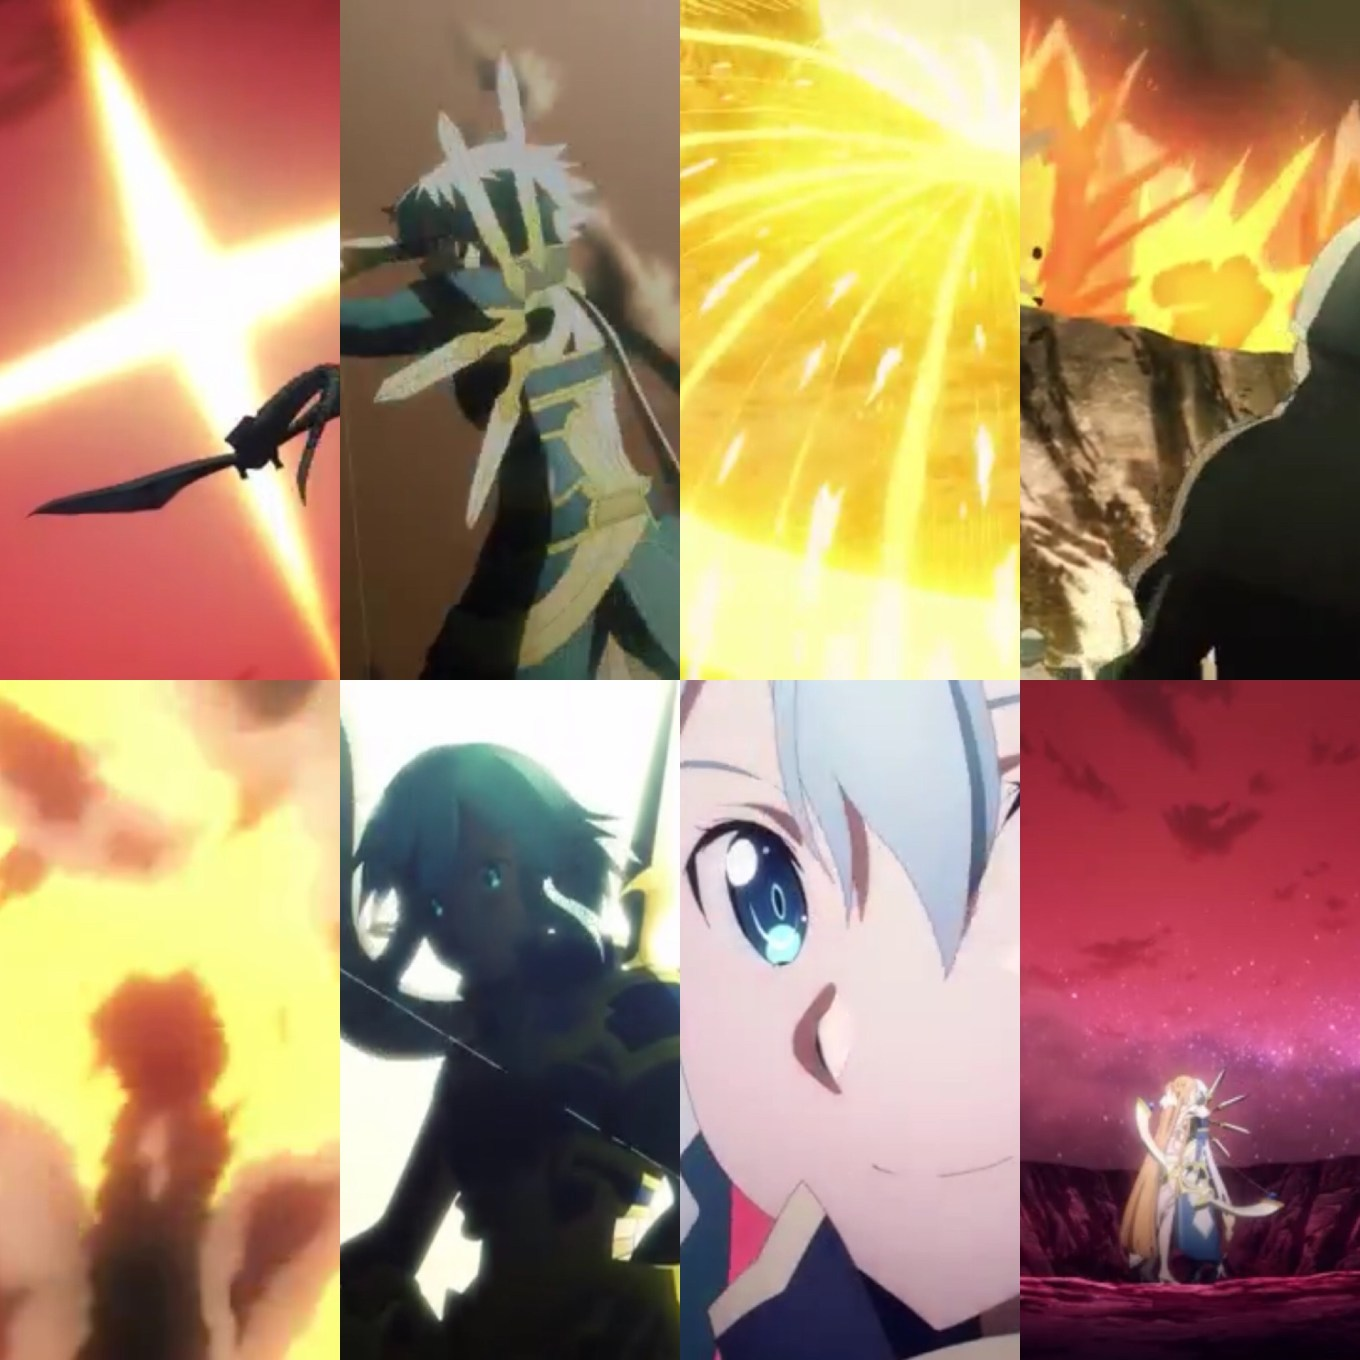 Sinon makes her entrance as the mid-season finale ends